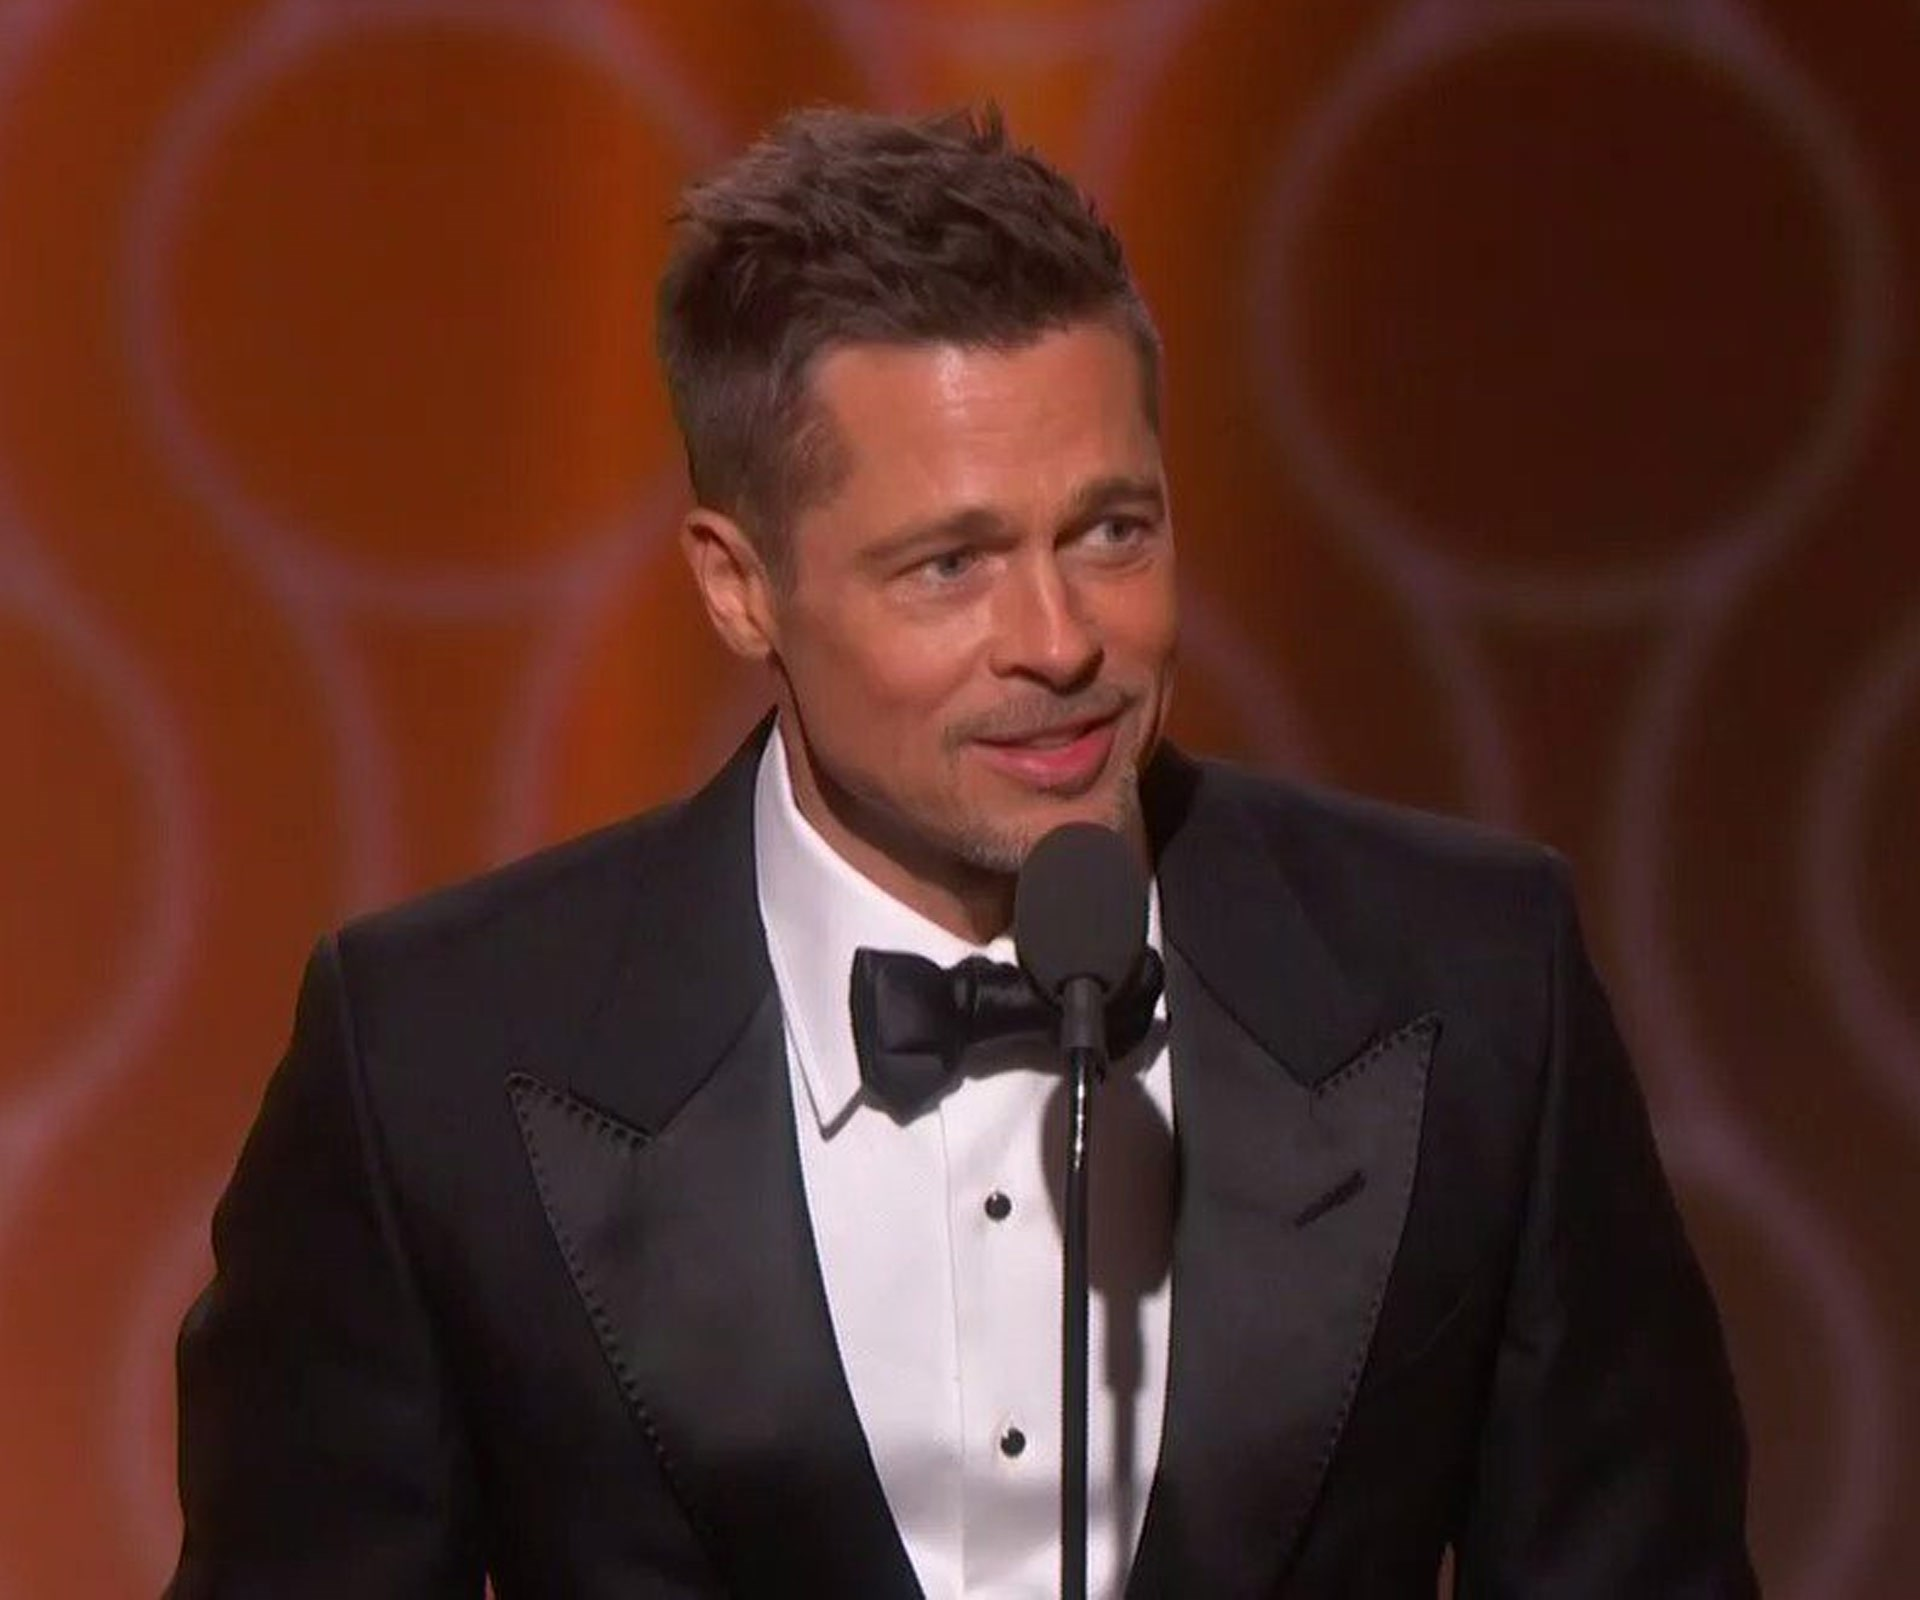 Brad Pitt looked better than ever as he took to the stage to present the Best Motion Picture - Comedy or Musical award, which went to *La La Land*. The audience were delighted by the newly single actor's surprise appearance and cheered him on.